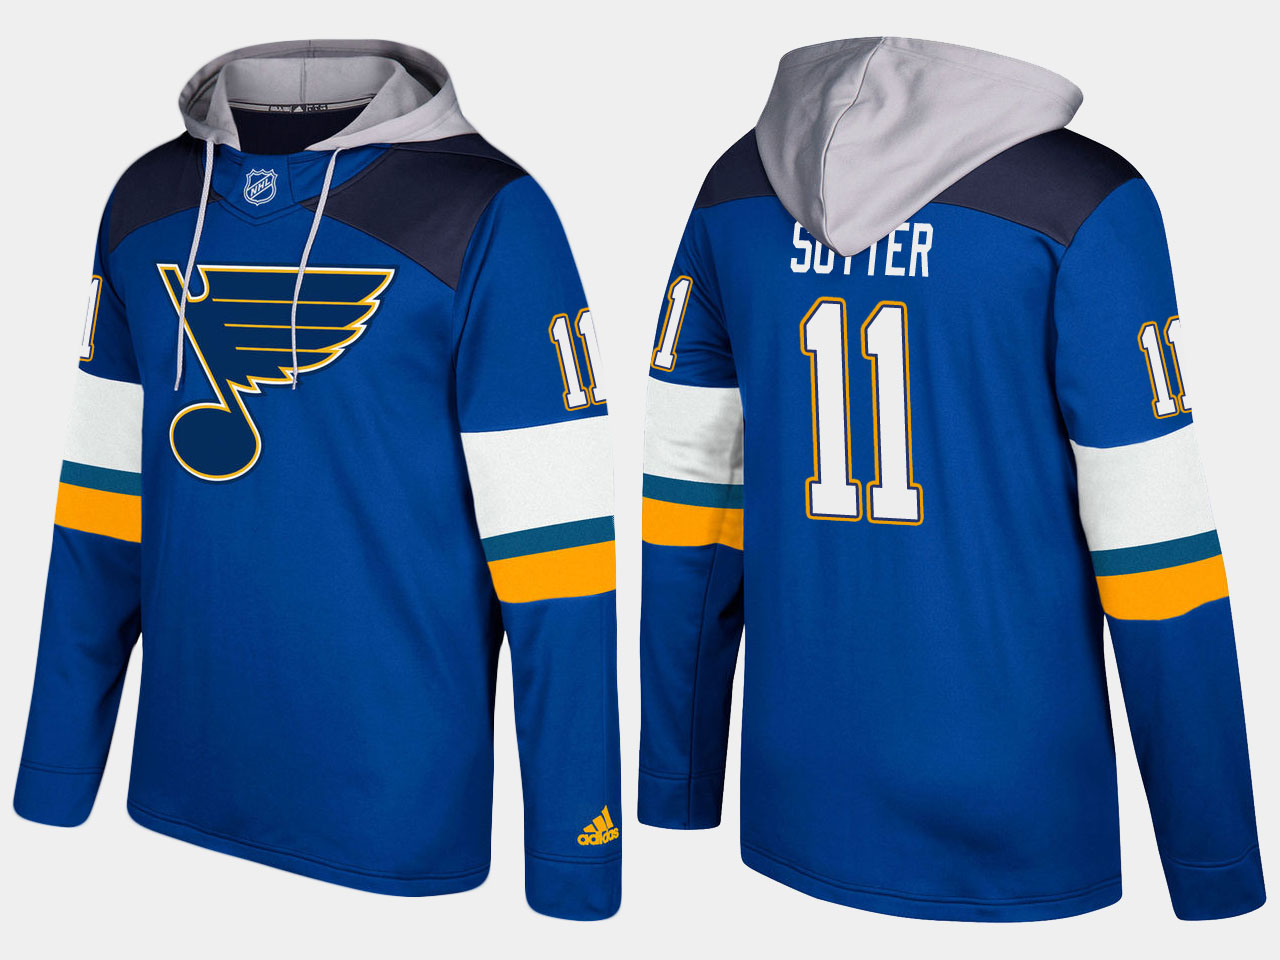 Nike Blues 11 Brian Sutter Retired Blue Name And Number Hoodie